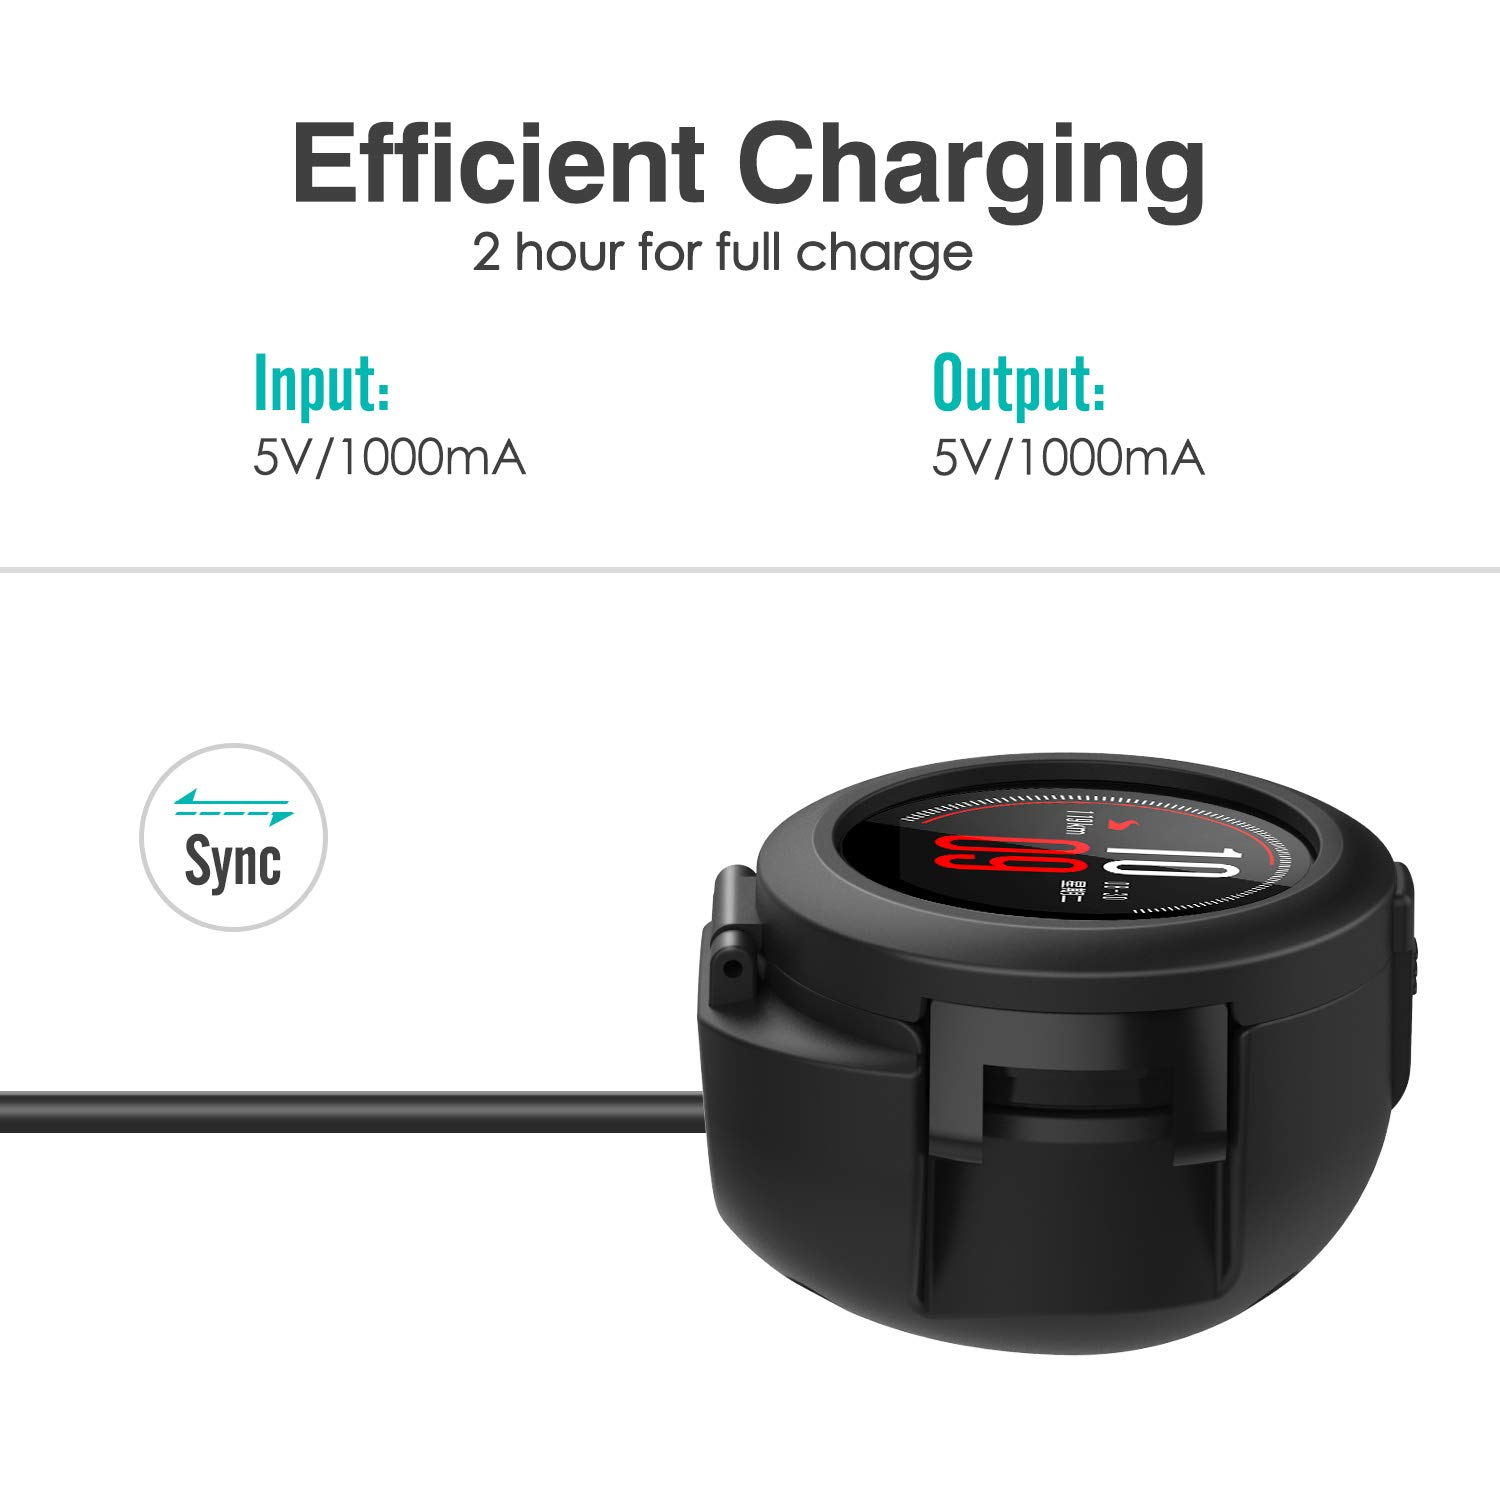 For Amazfit Verge A1801 Charger Dock, Portable Fast Charging Replacement Charging Docking Stand Adapter Station Cradle Dock Base